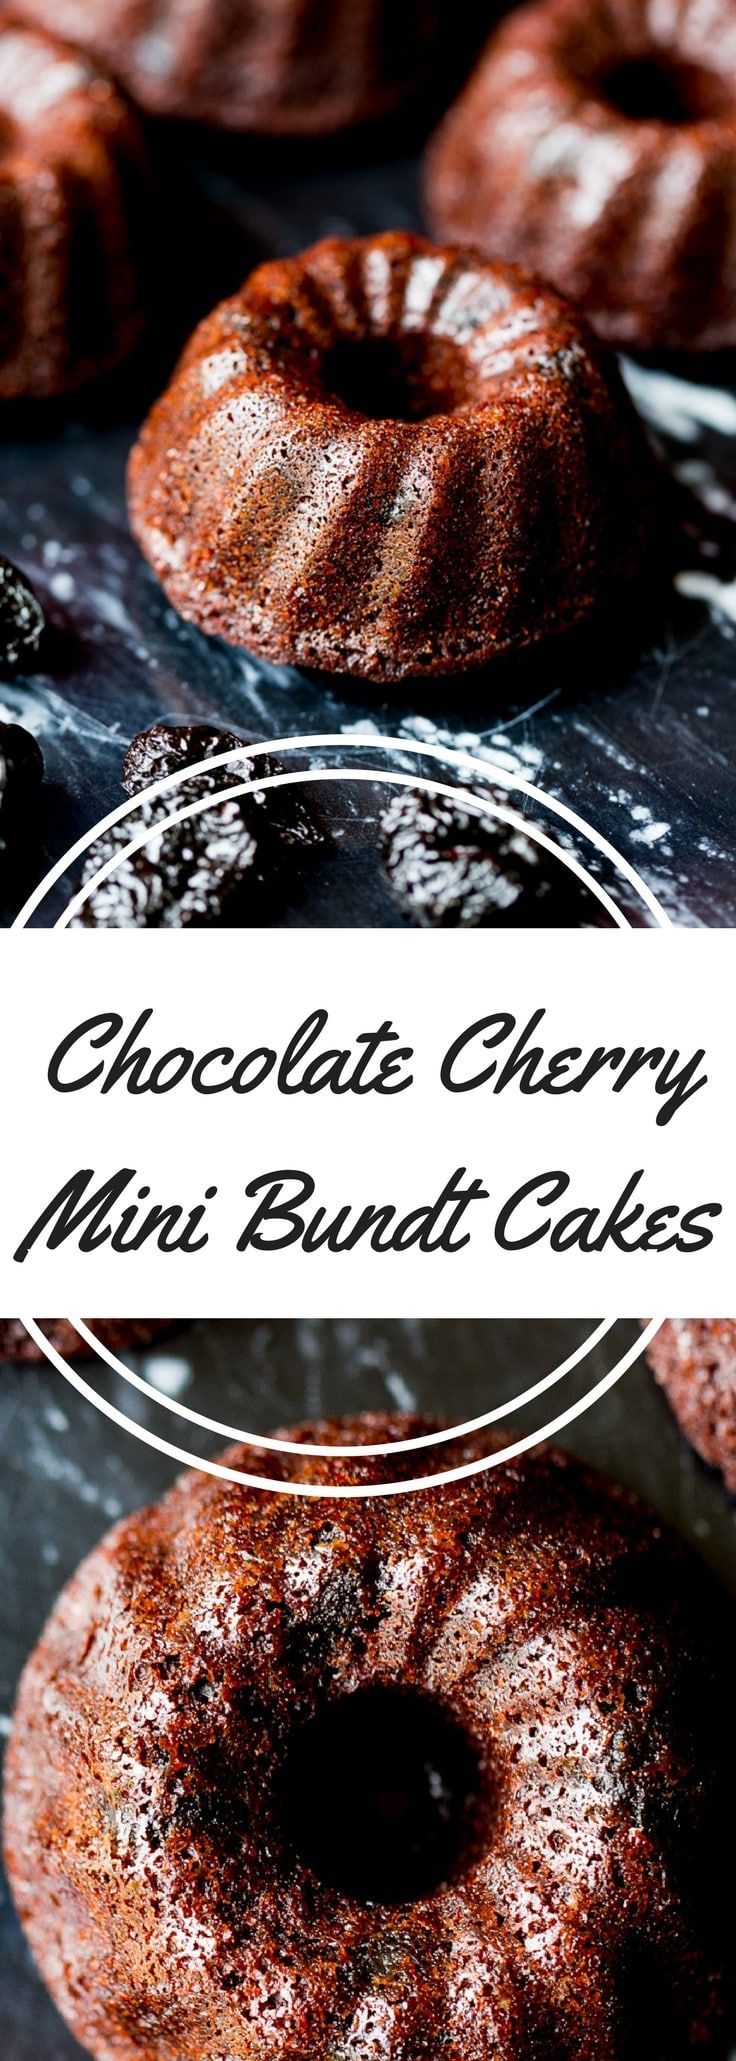 Chocolate cherry mini bundt cakes are made with pure cocoa and dried sweet cherries (soaked in a surprising ingredient to bring out the flavor). via @recipeforperfec sponsored by @7UP #MixItUpALittle